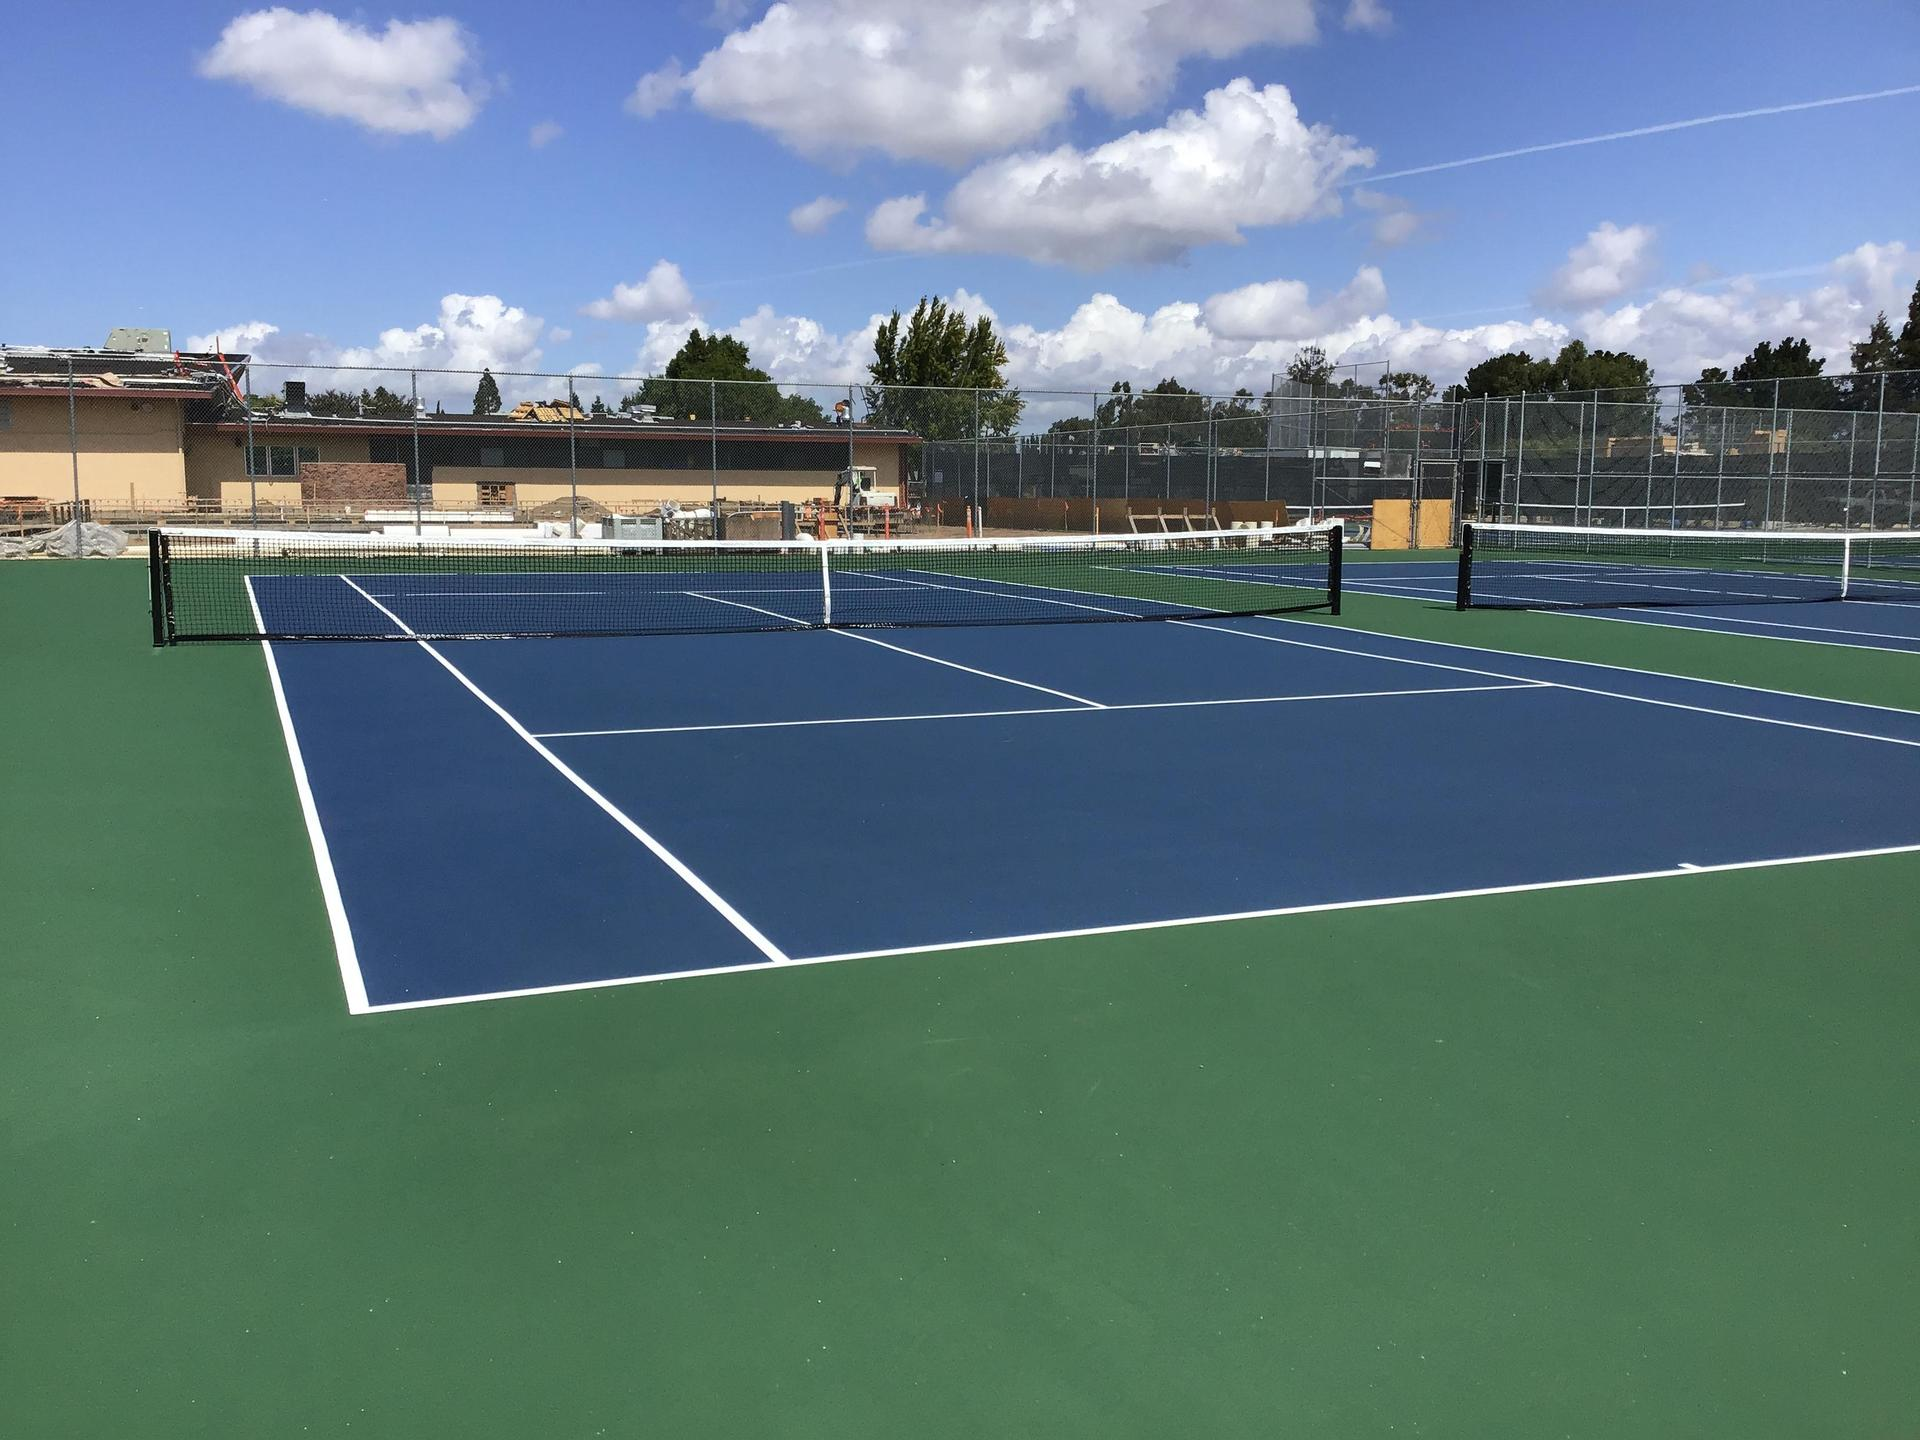 Image of new tennis courts at Del Mar